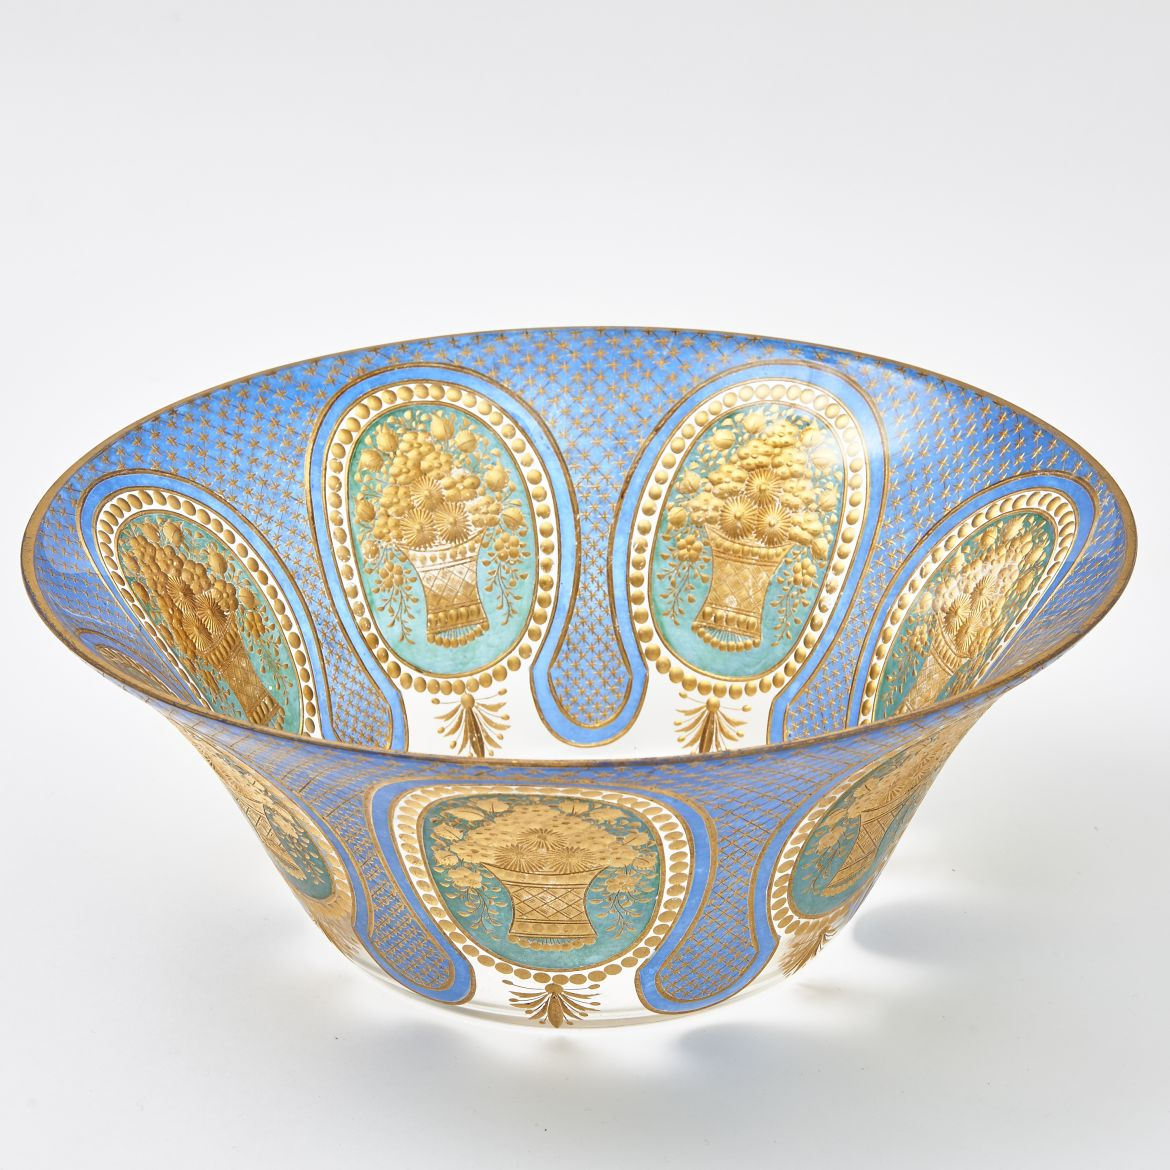 Highly Decorated Bohemian Bowl